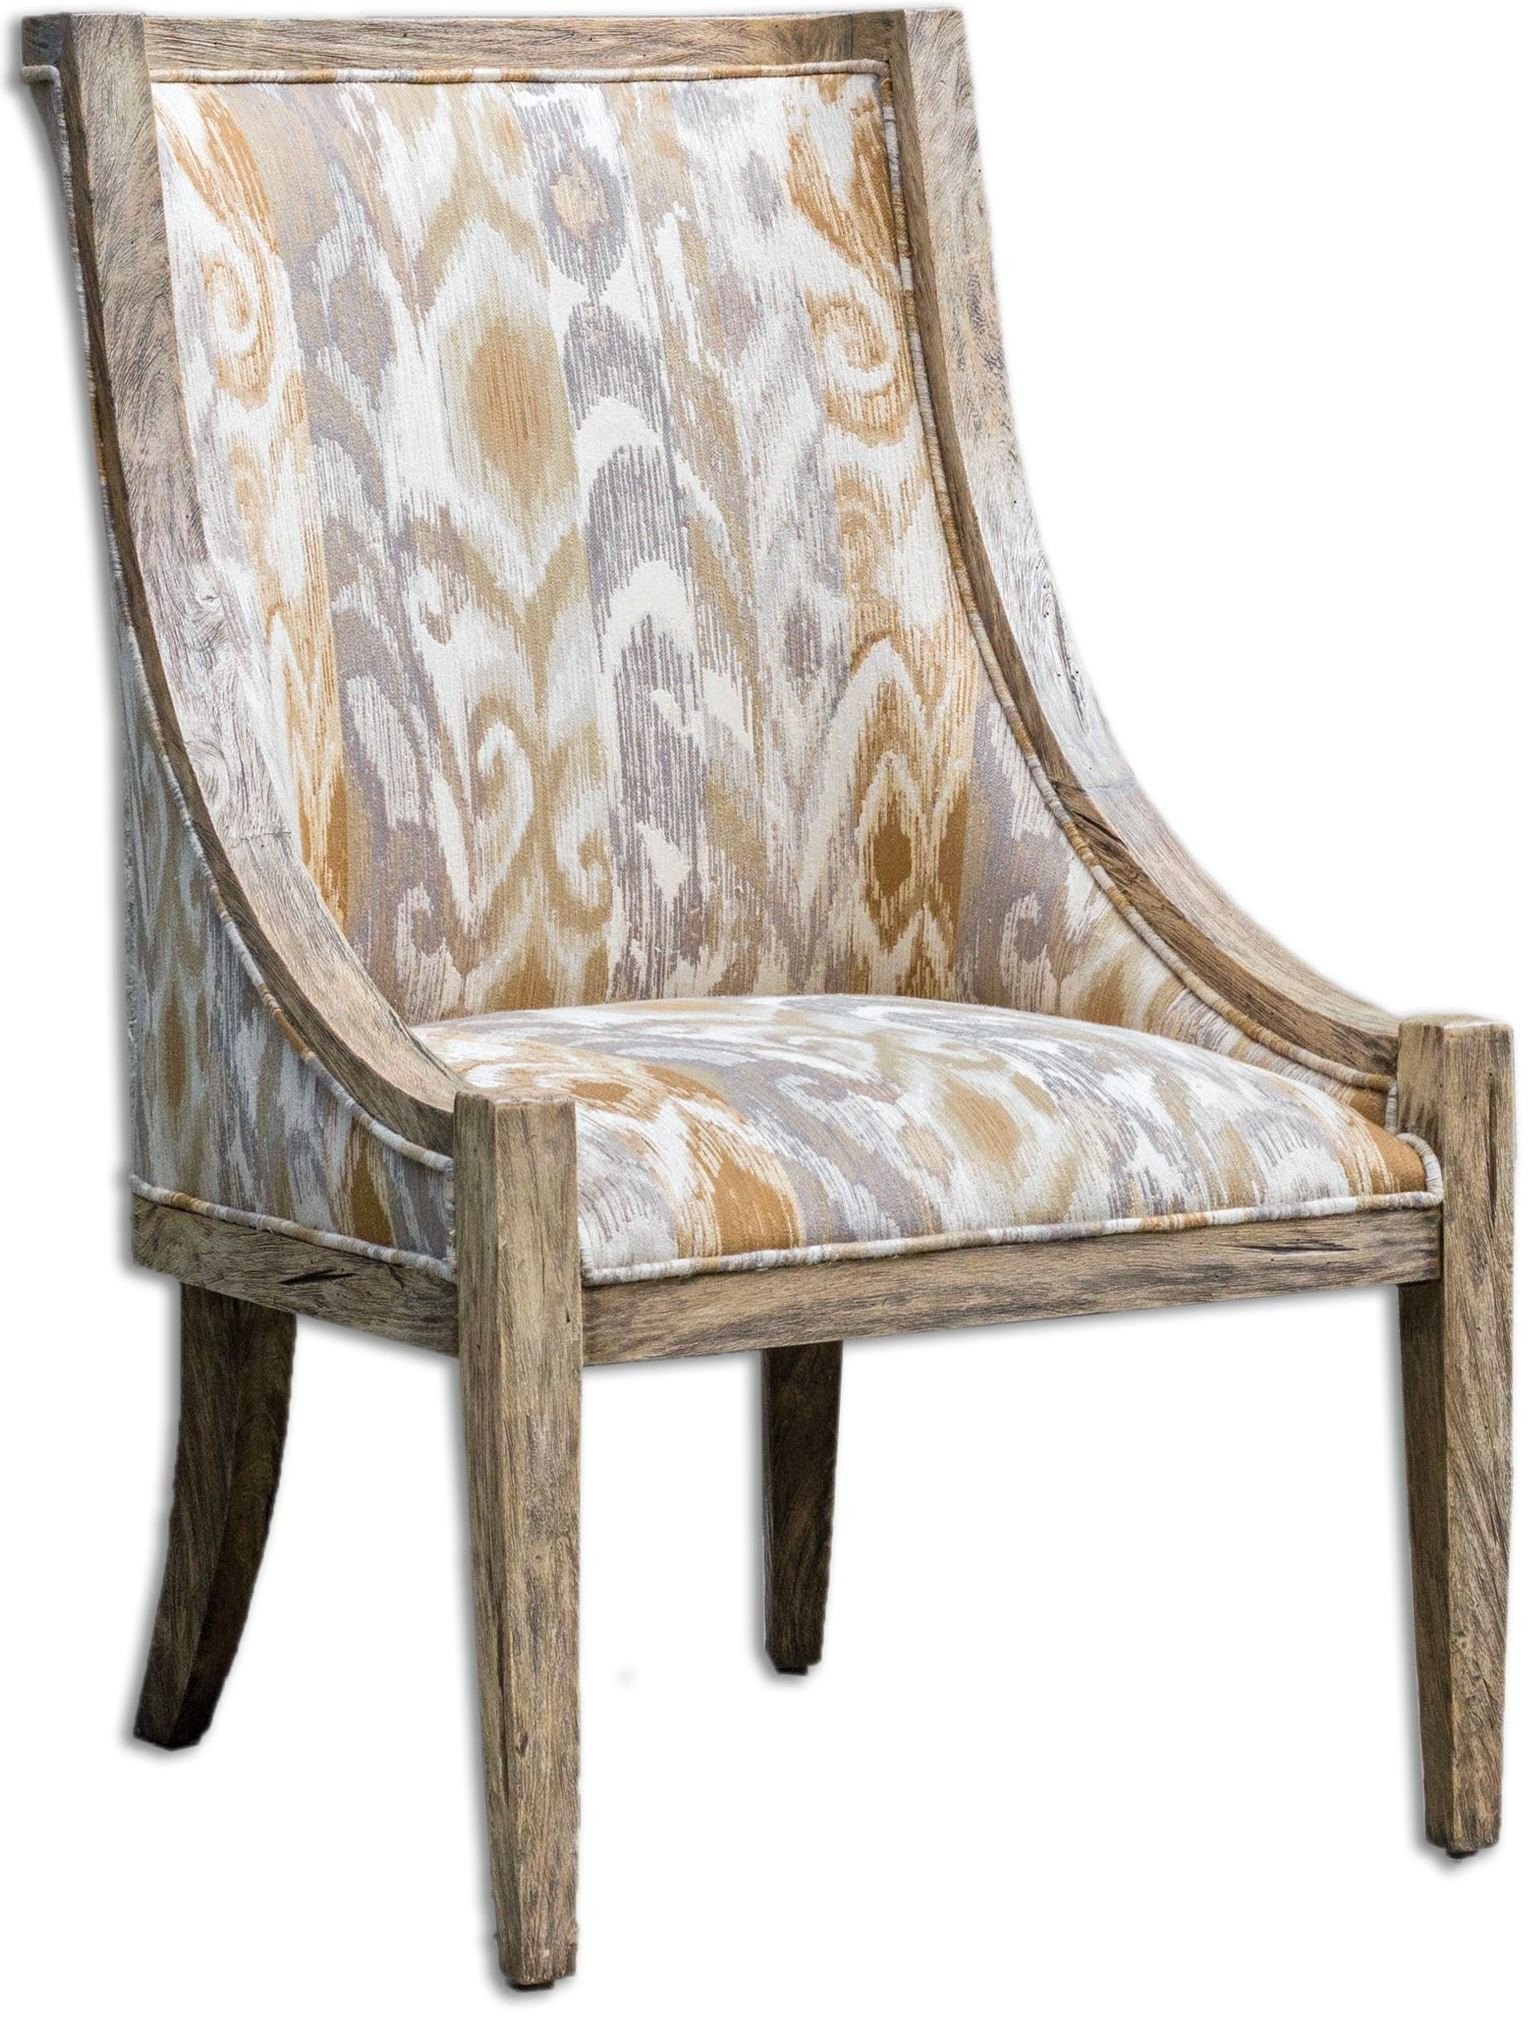 Driftwood Chair Alabaster Driftwood Accent Chair From Uttermost 23634